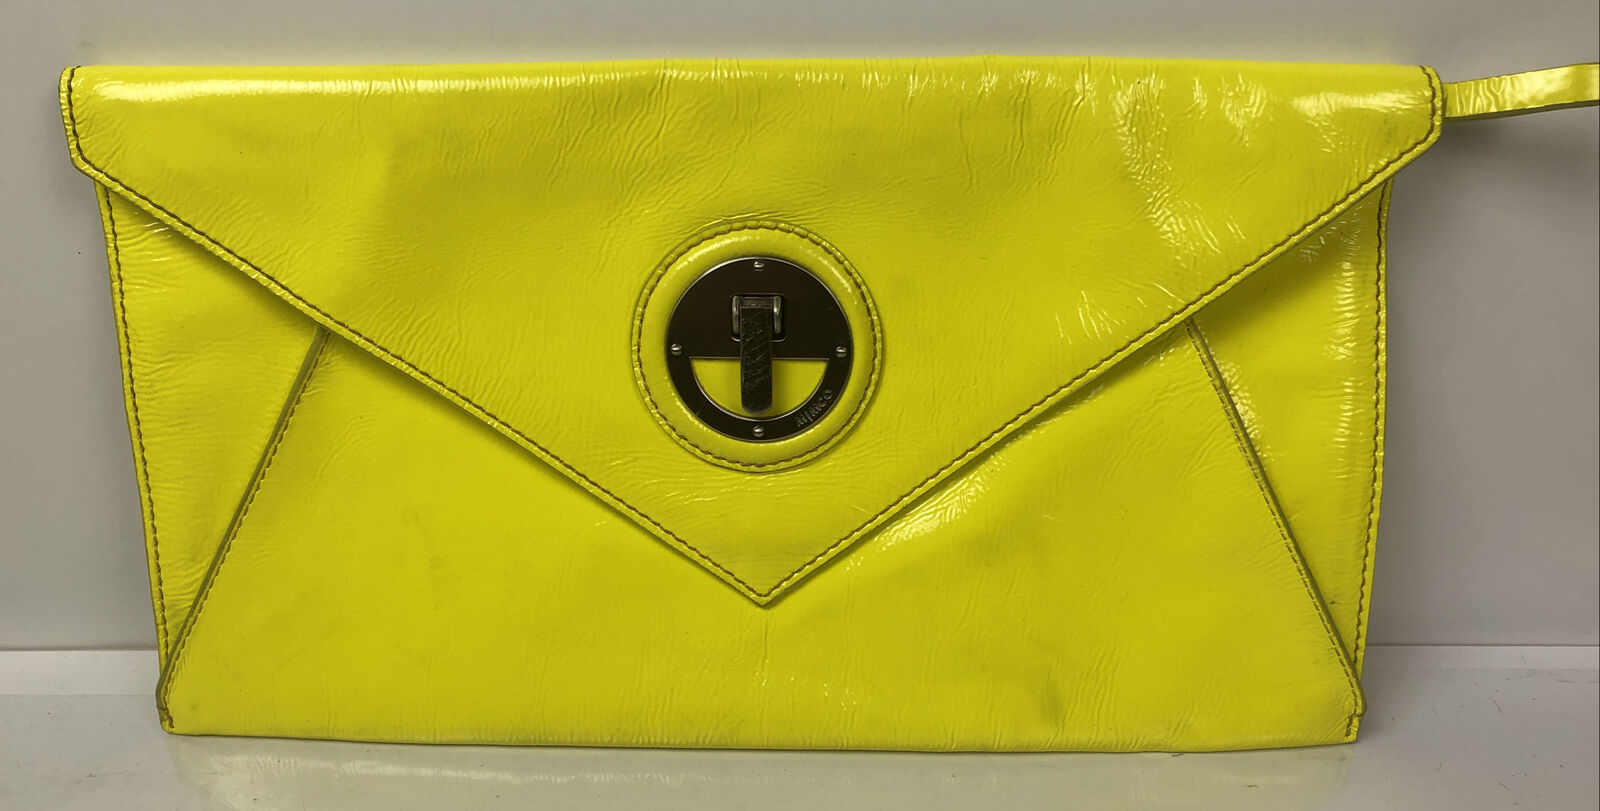 M723 Mimco clutch - Purse Yellow Leather In Good Condition